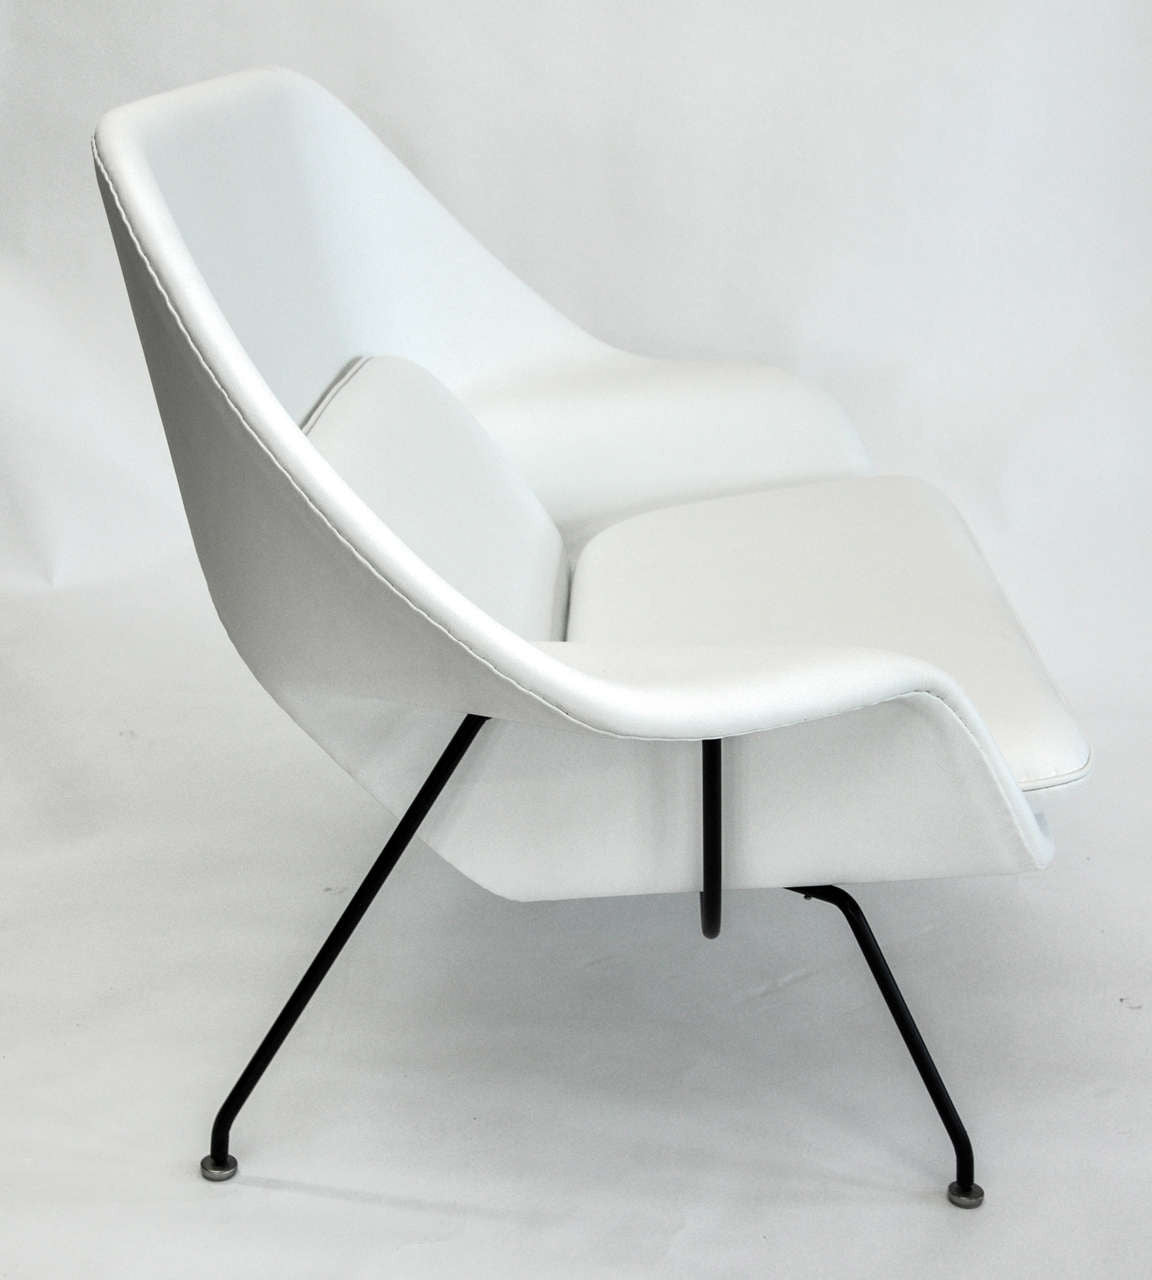 Womb Settee by Eero Saarinen for Knoll - The Exchange Int